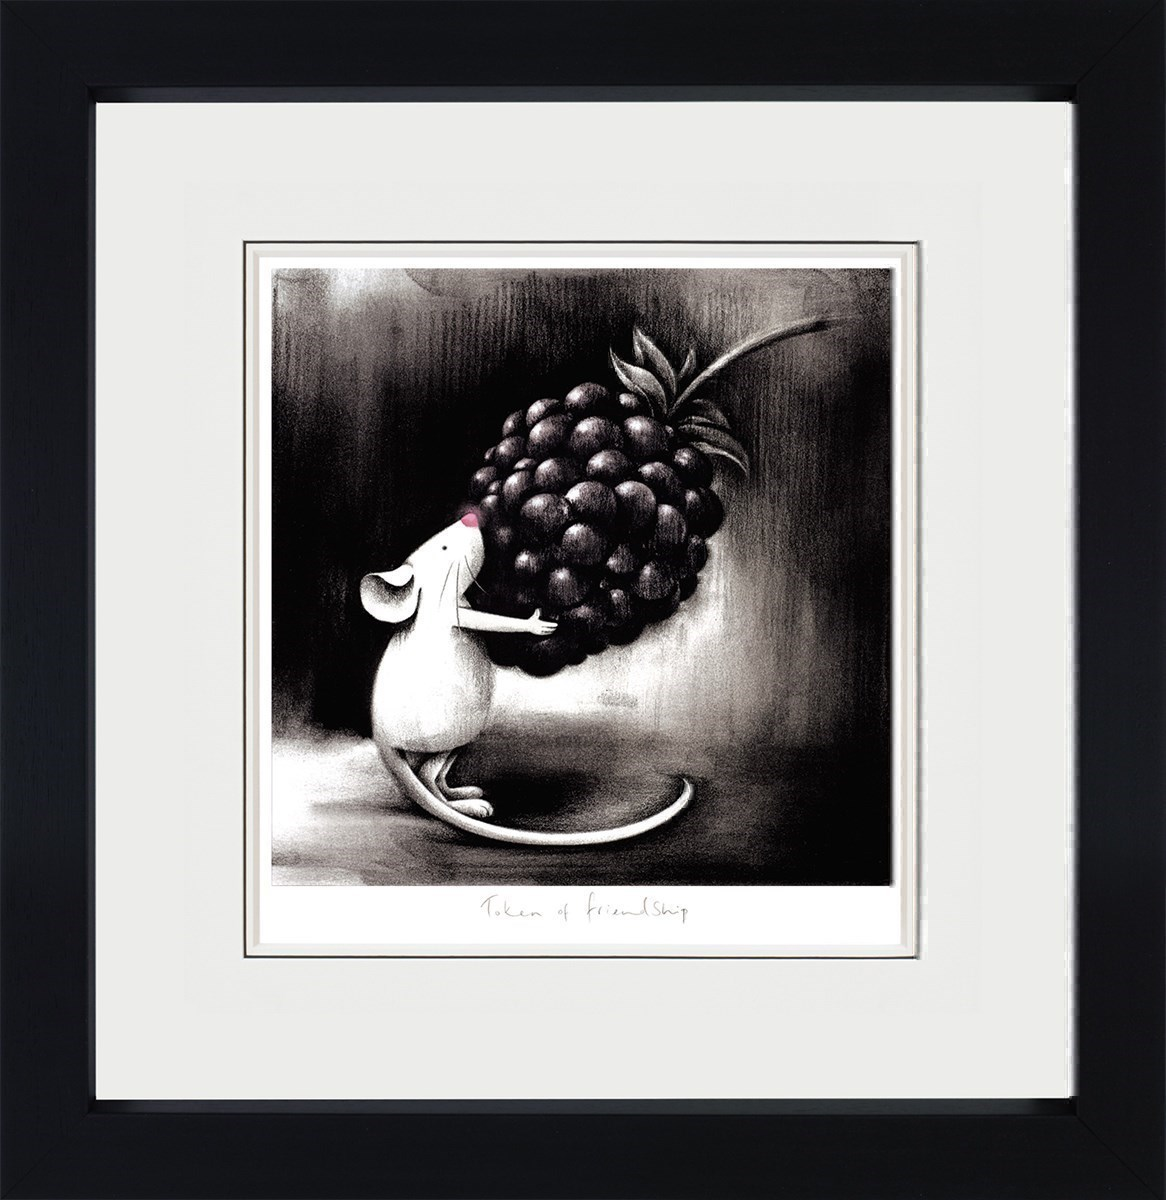 Token of Friendship  by Doug Hyde - Limited Edition on Paper sized 12x12 inches. Available from Whitewall Galleries